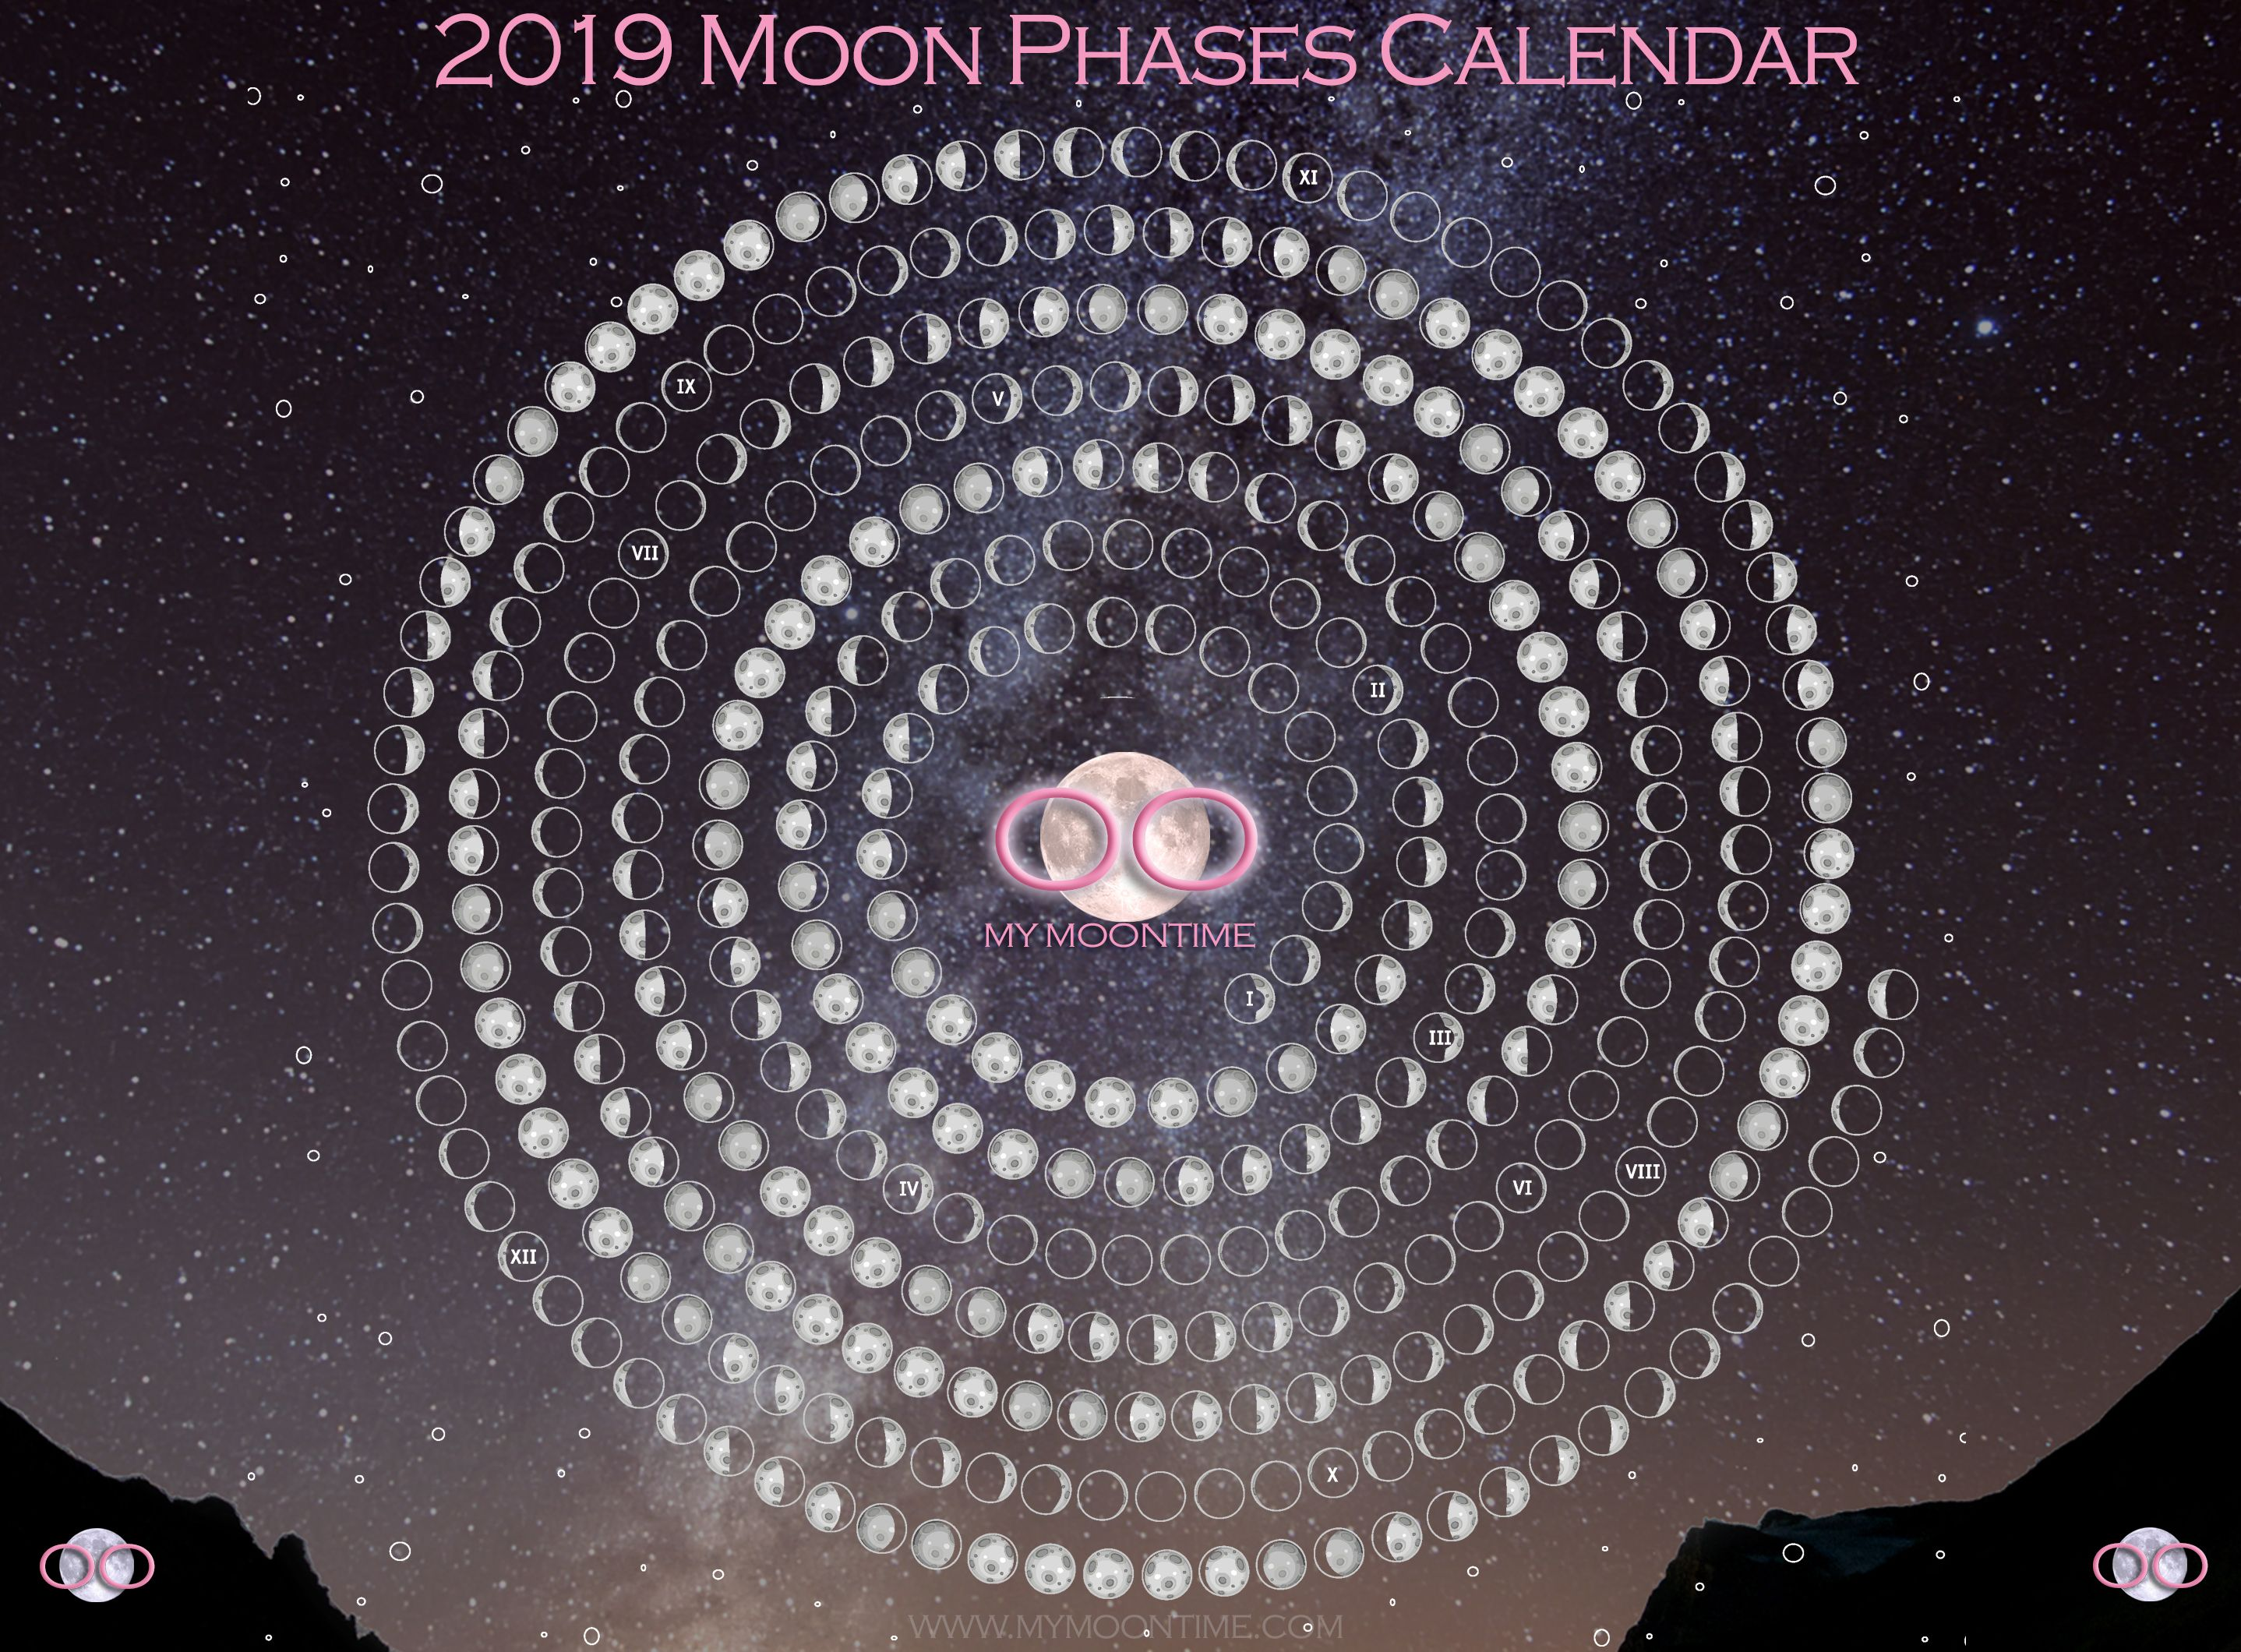 2019 moon phase calendar from my moontime app moon phase